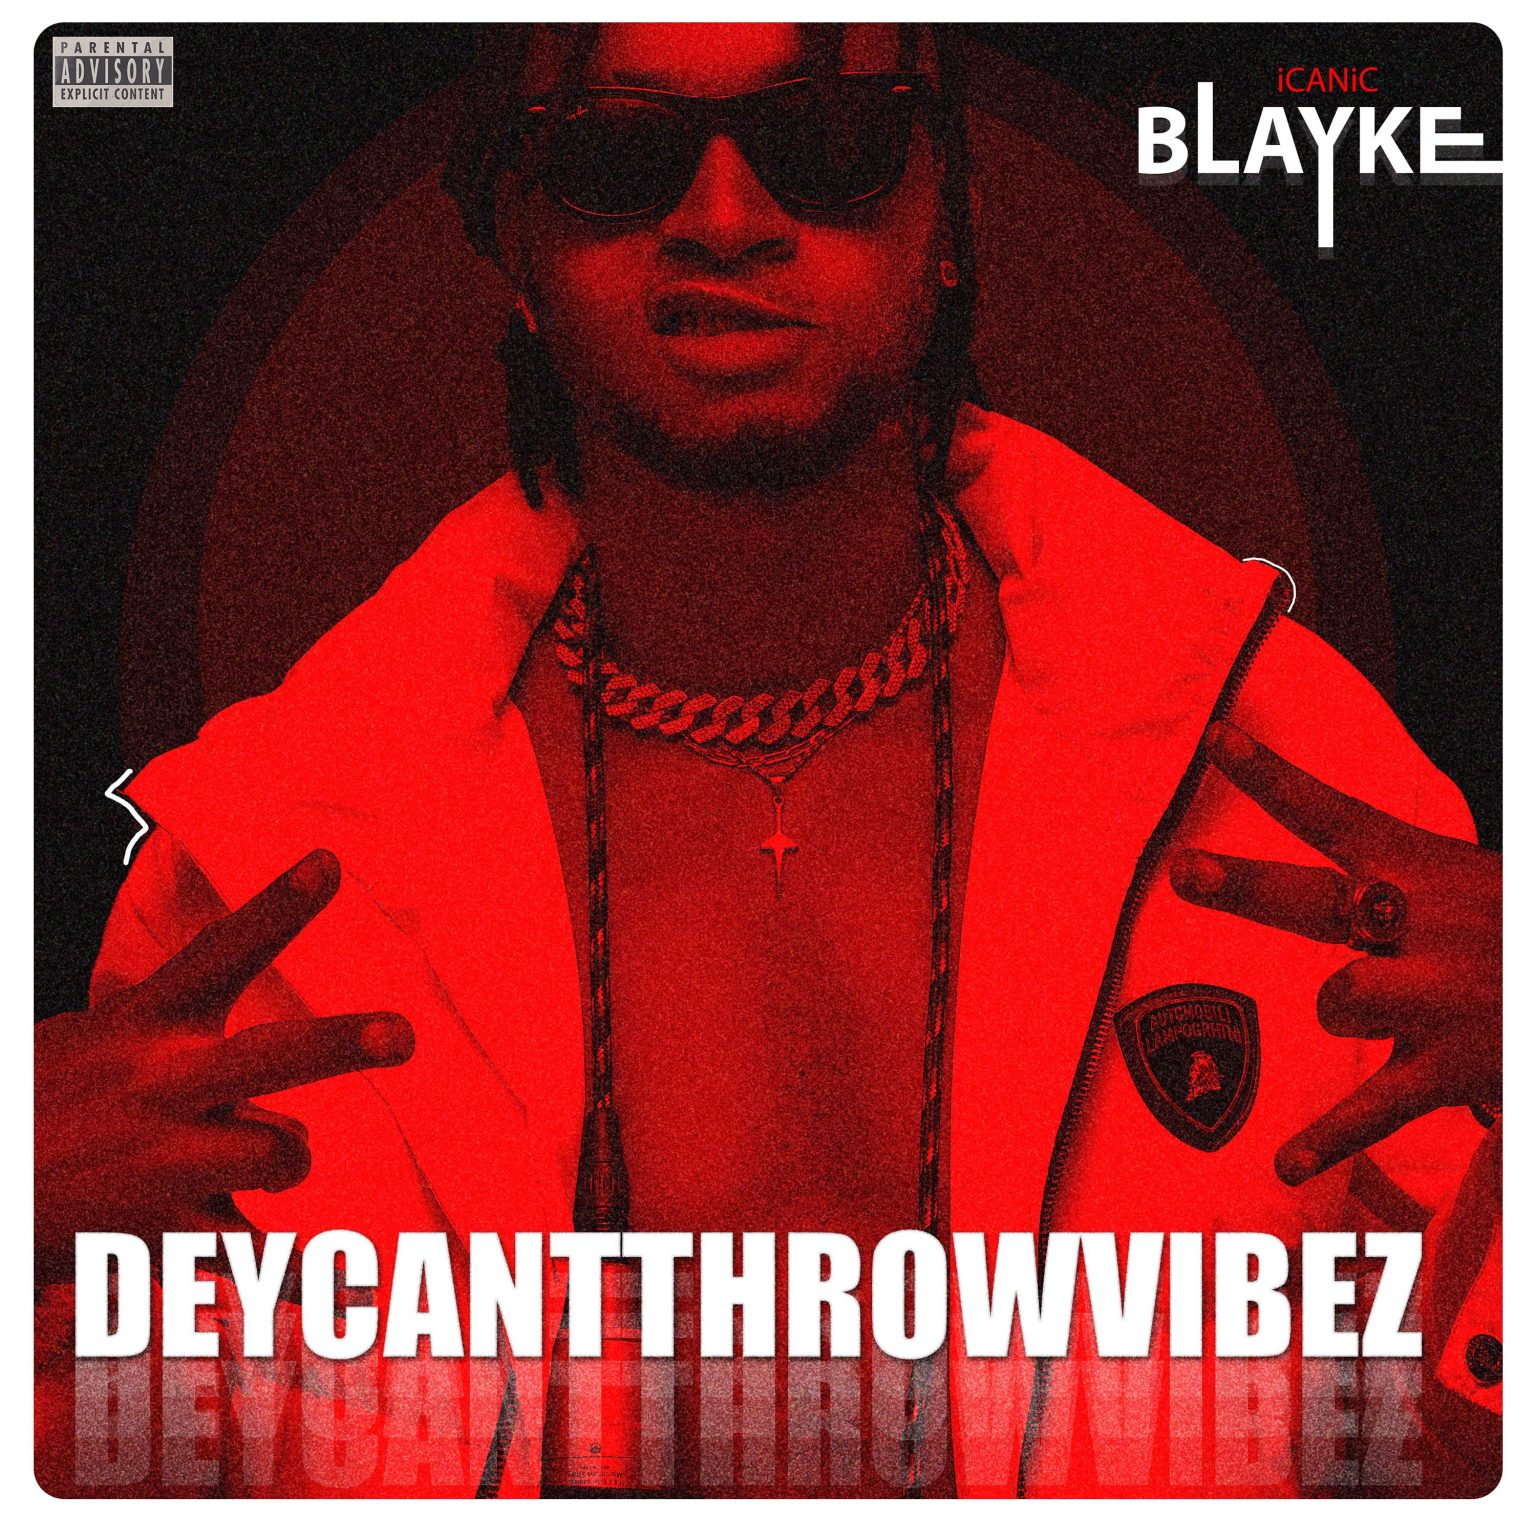 Icanic Blayke – Big Flex